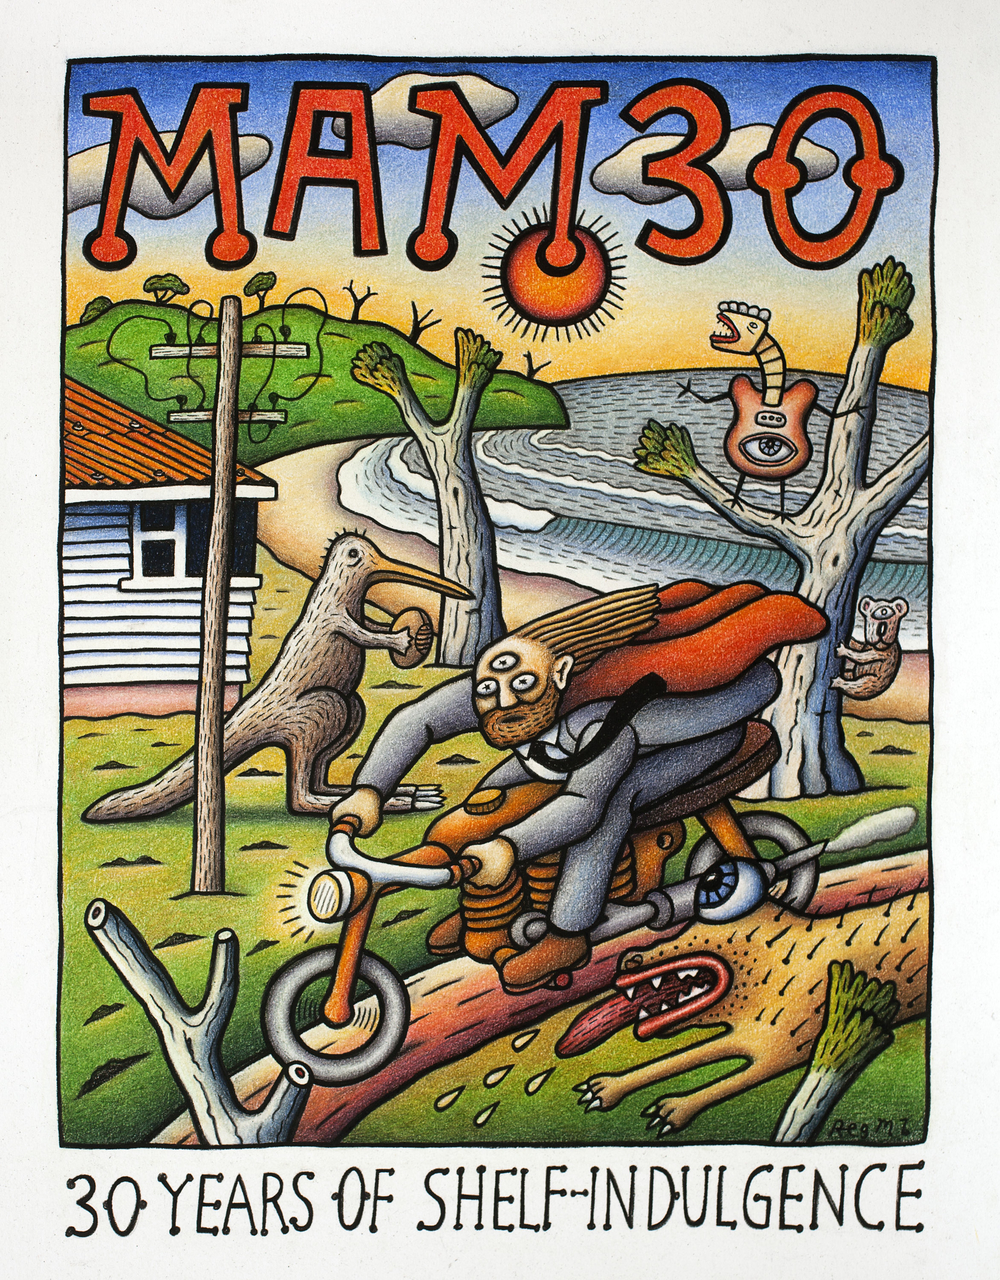 Mambo: 30 Years of Shelf-Indulgence artwork by Reg Mombassa